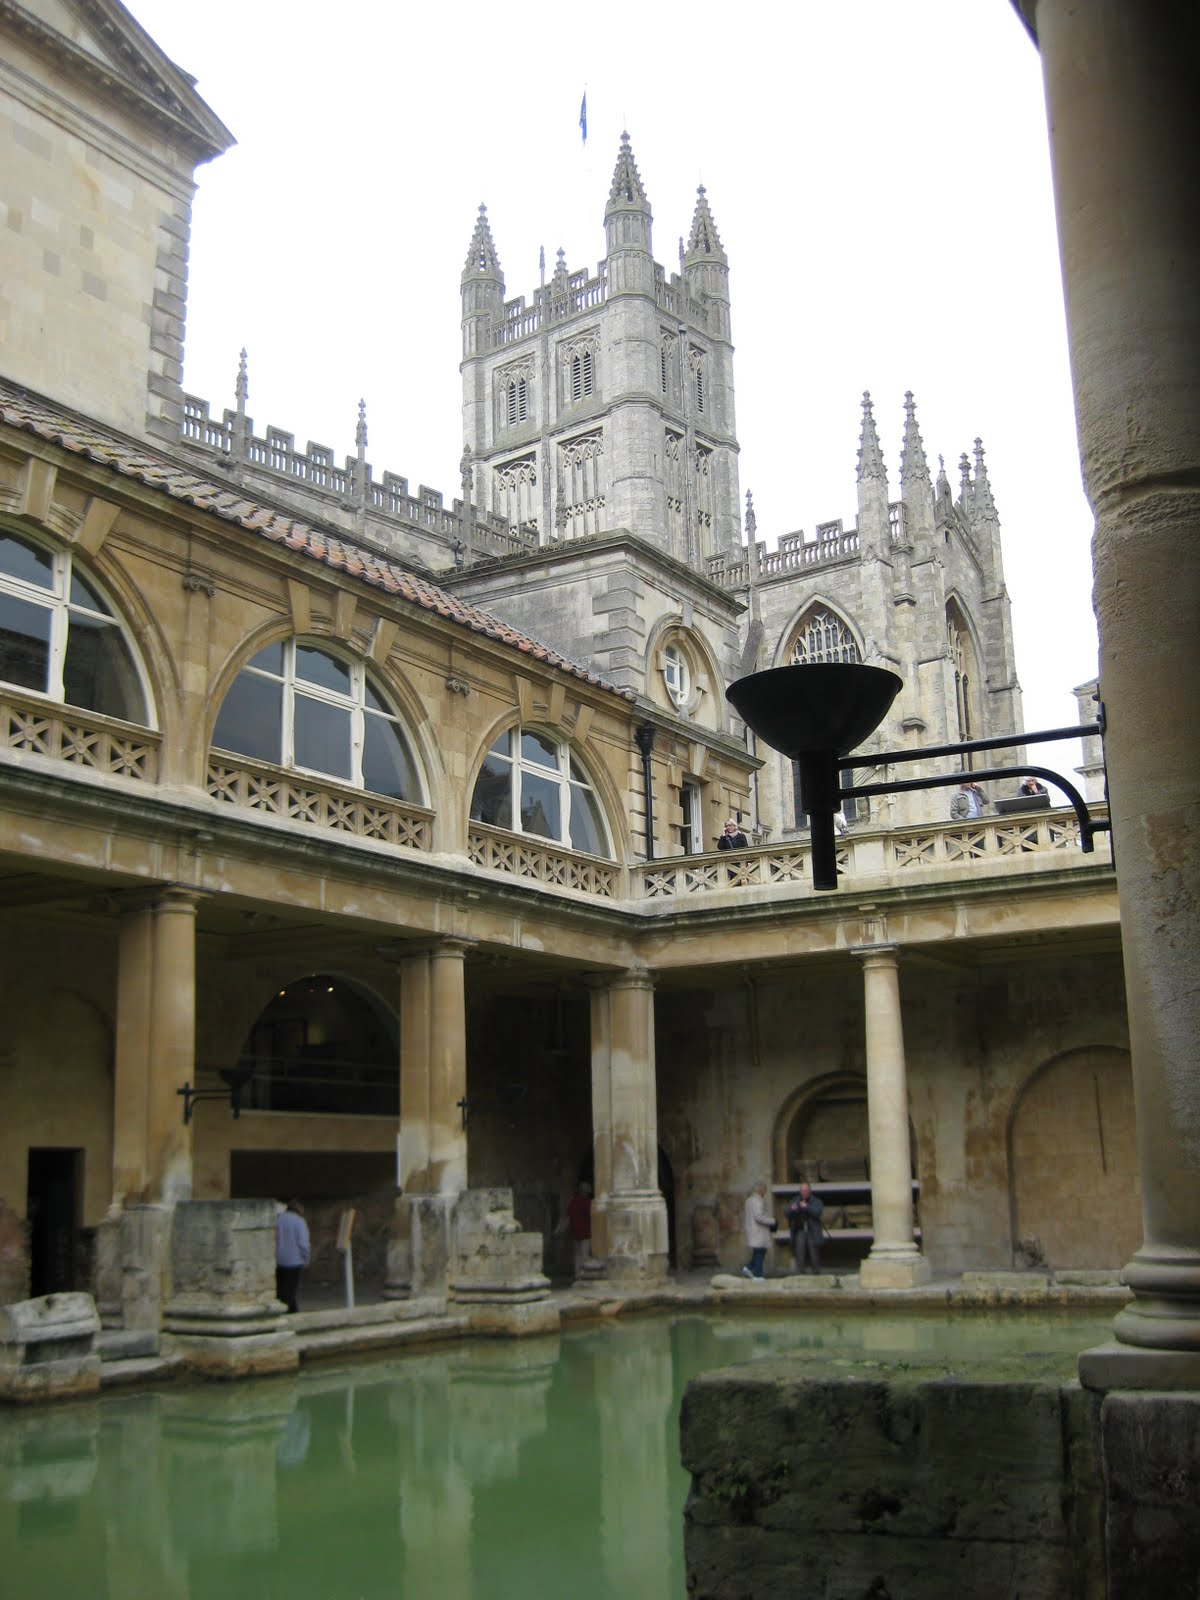 Baths, with church in background